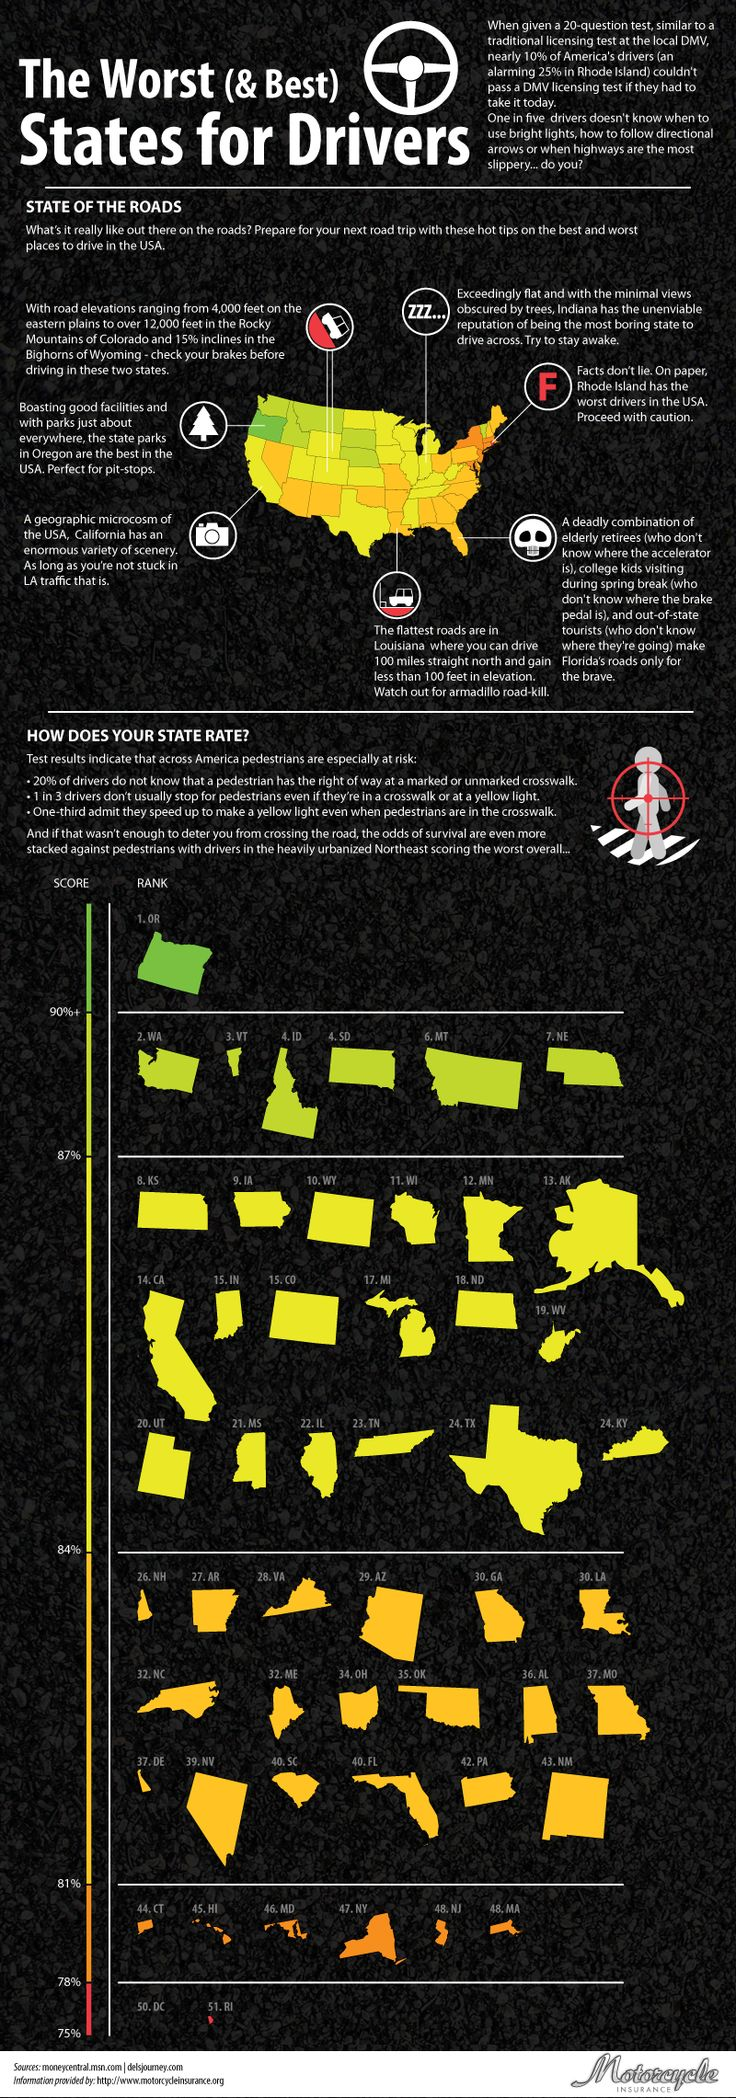 States to Avoid on Motorcycle - unfortunately, Florida is labeled Deadly... and that's where I live :(